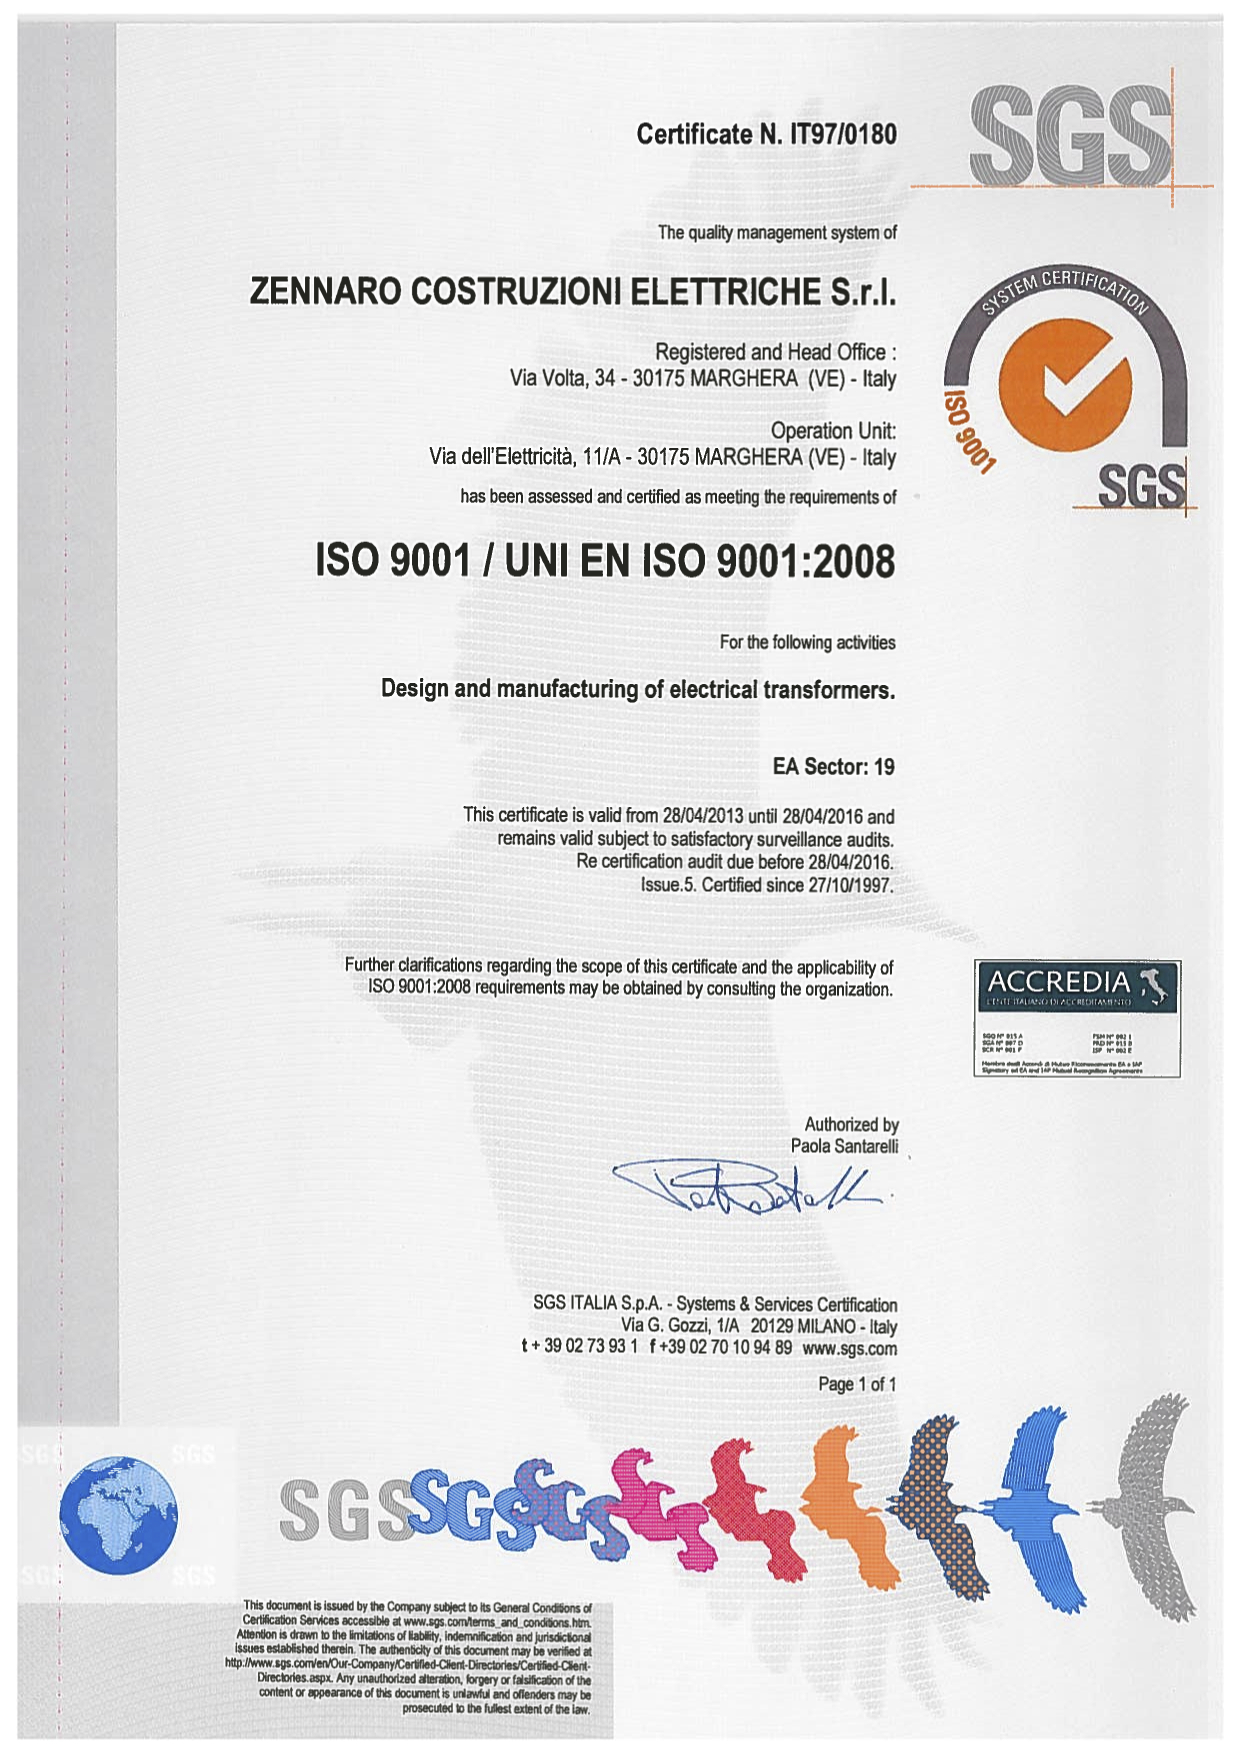 Zennaro electrical constructions certificate nit970180 issued xflitez Image collections